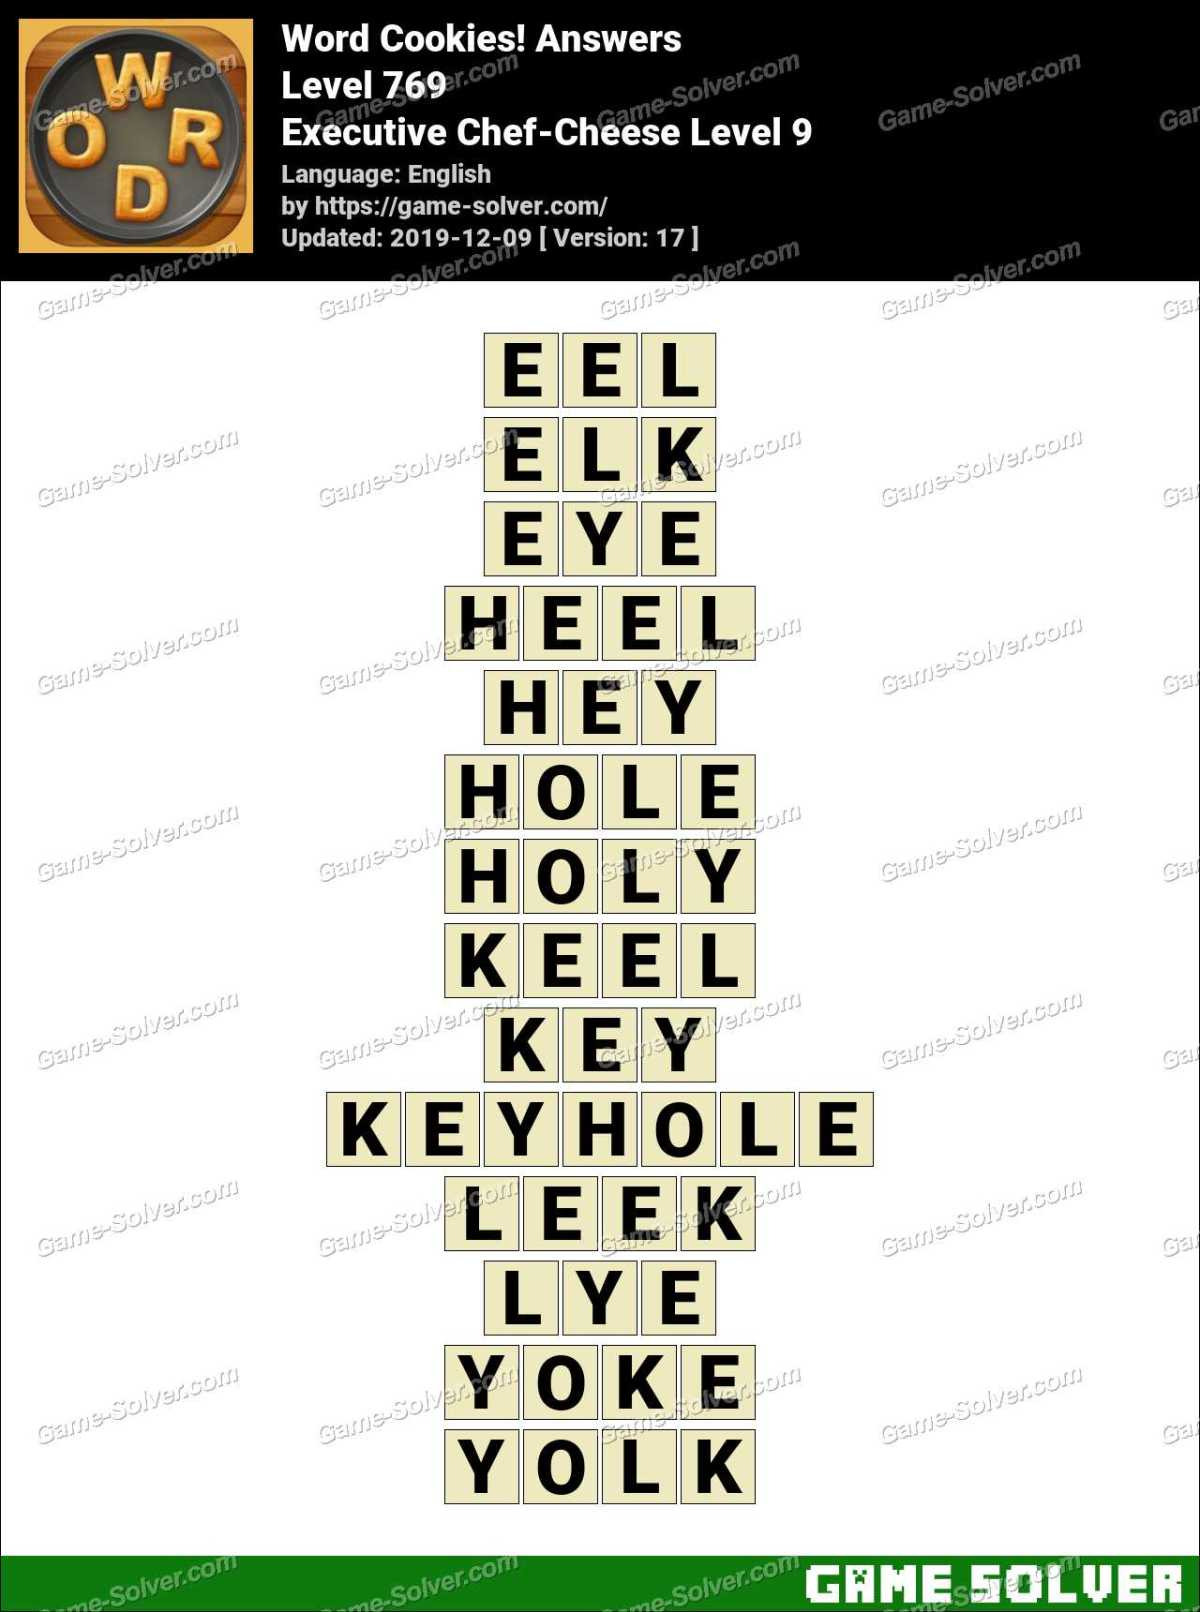 Word Cookies Executive Chef-Cheese Level 9 Answers